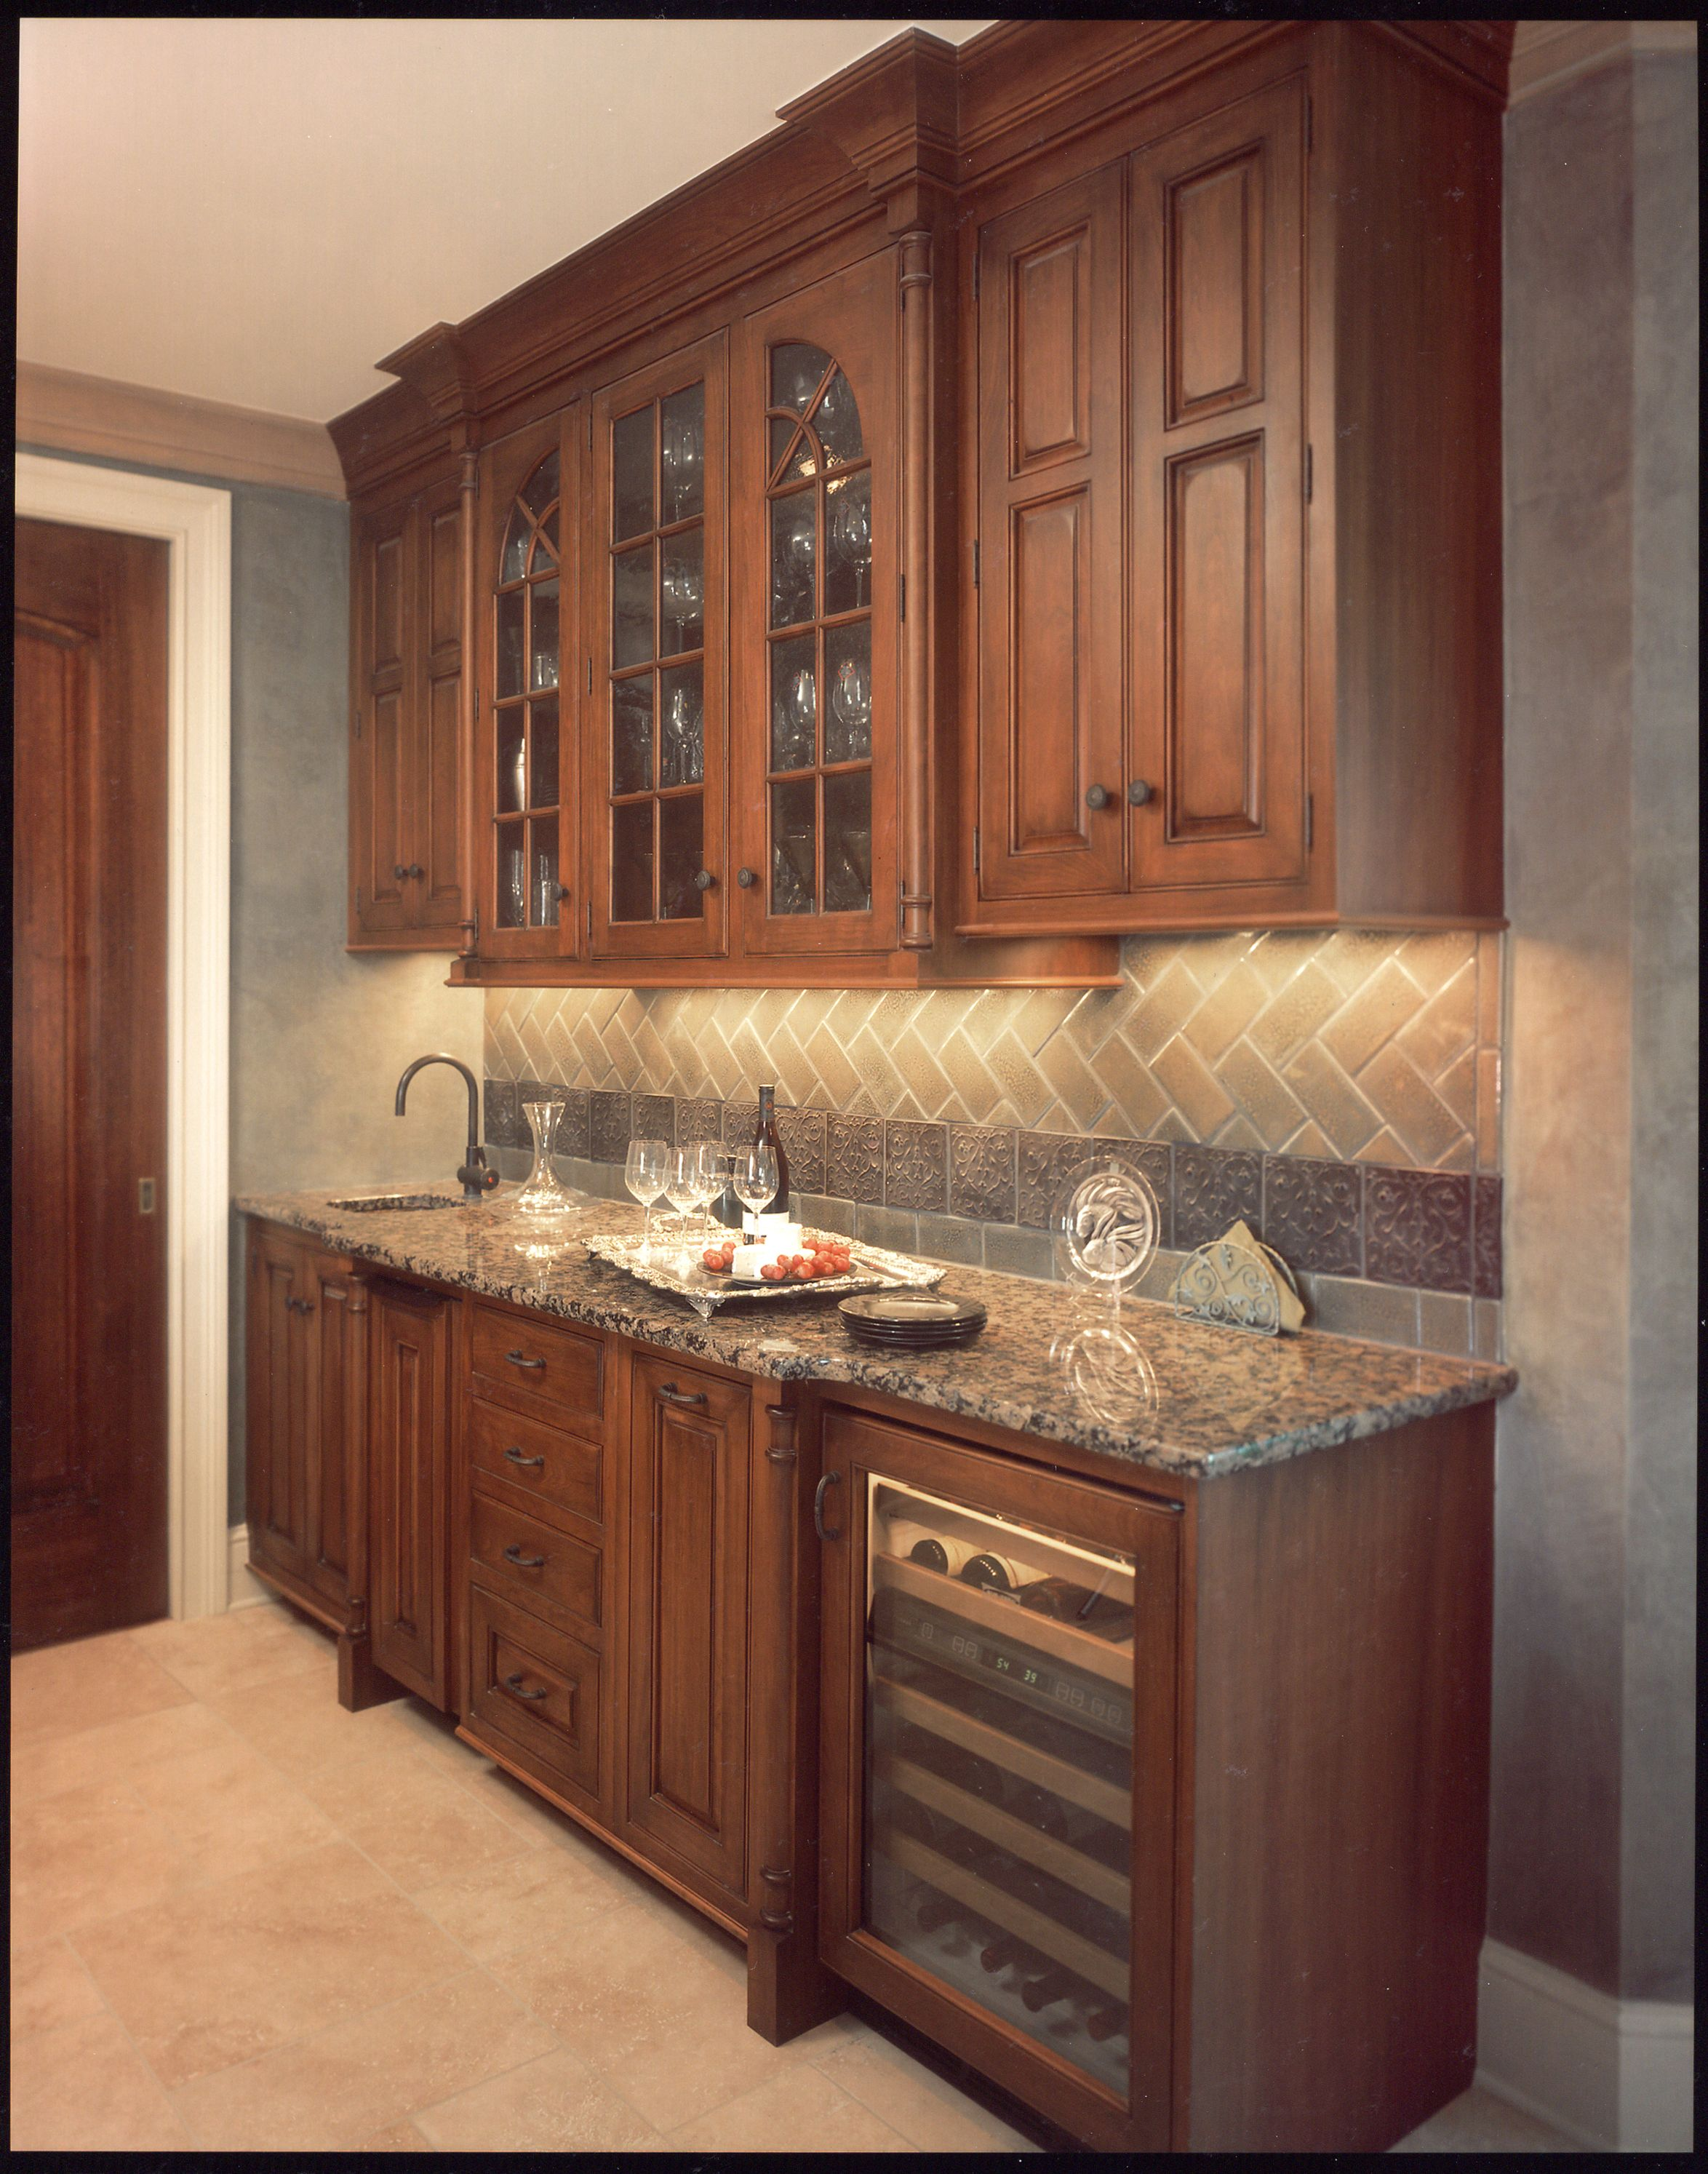 Butlers Pantry designed by one of our Award winning Certified